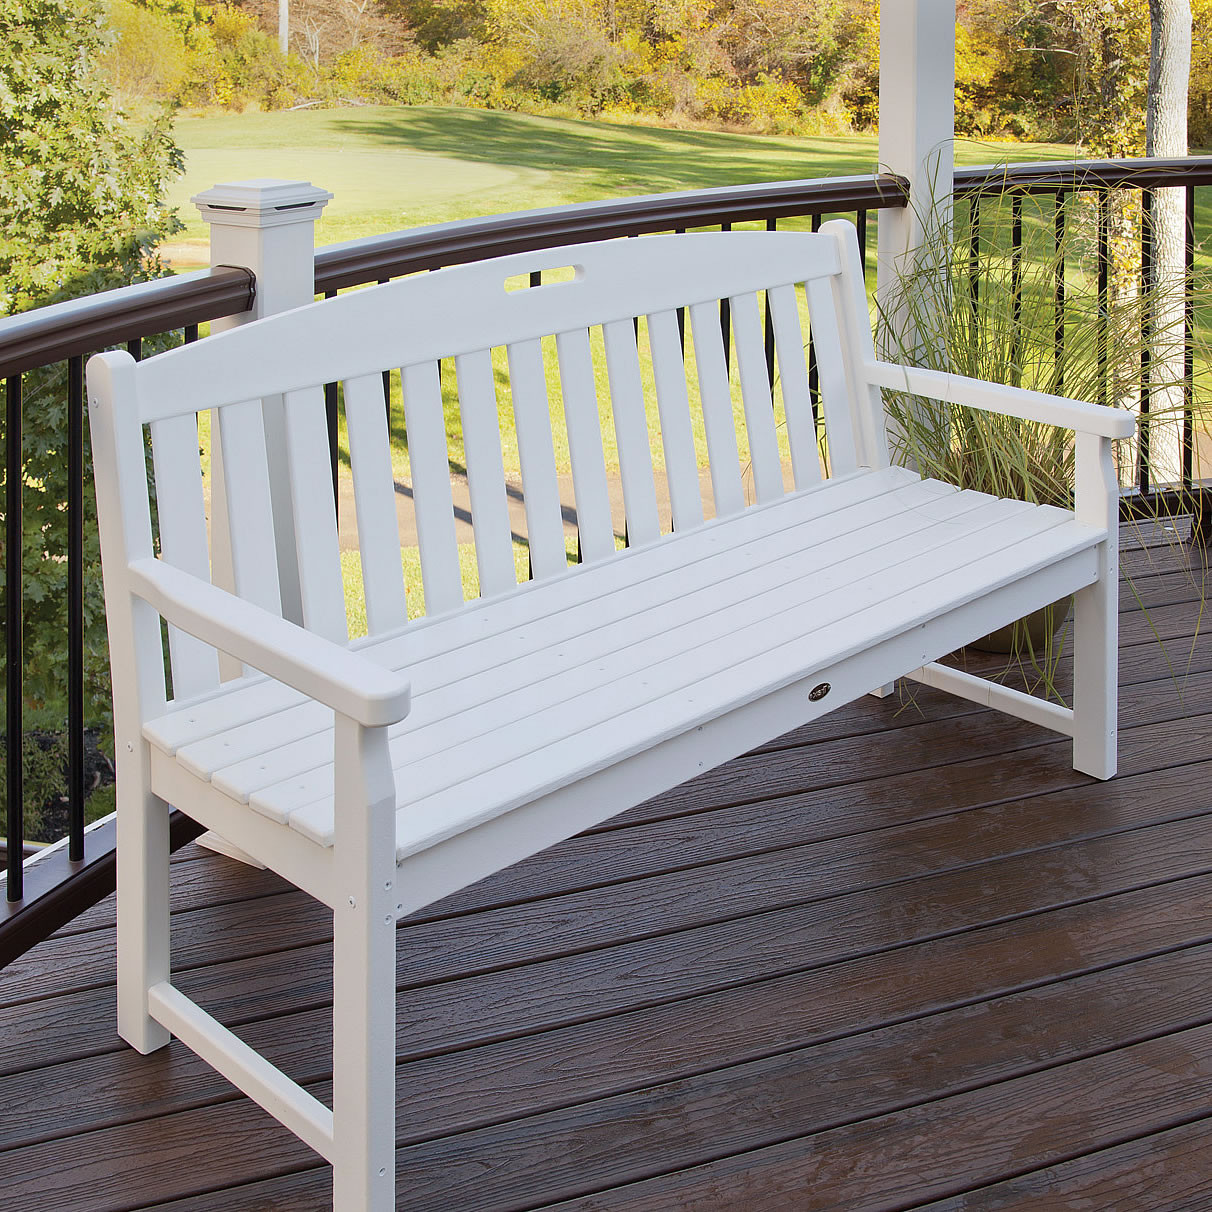 Trex 174 Outdoor Furniture Yacht Club 60 In Bench Yacht